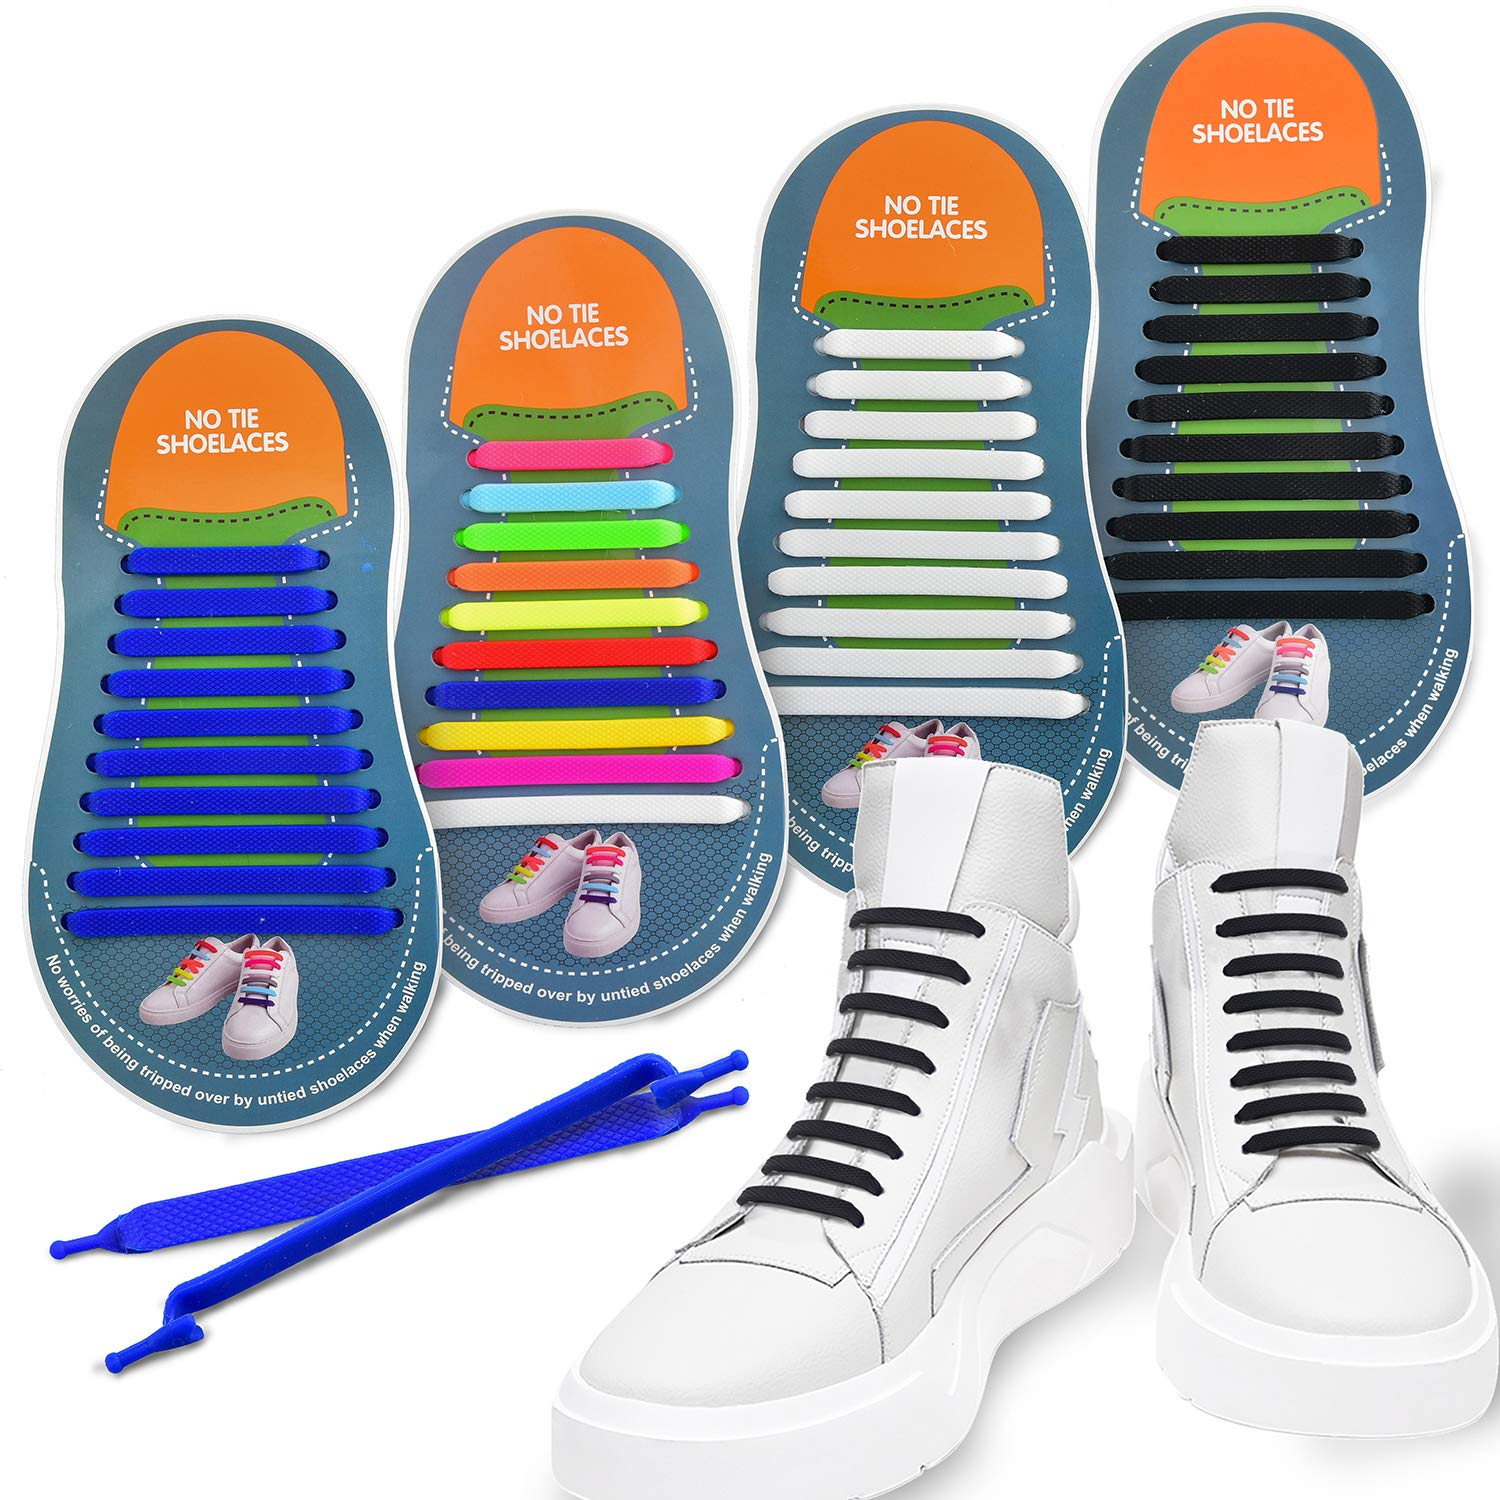 59fa6f817bce2 4 Pairs No Tie Shoelaces, Young Colorful Easy Shoelaces, Durable Adults  Tieless/Silicone Elastic Sports Fans Shoe Laces for ...